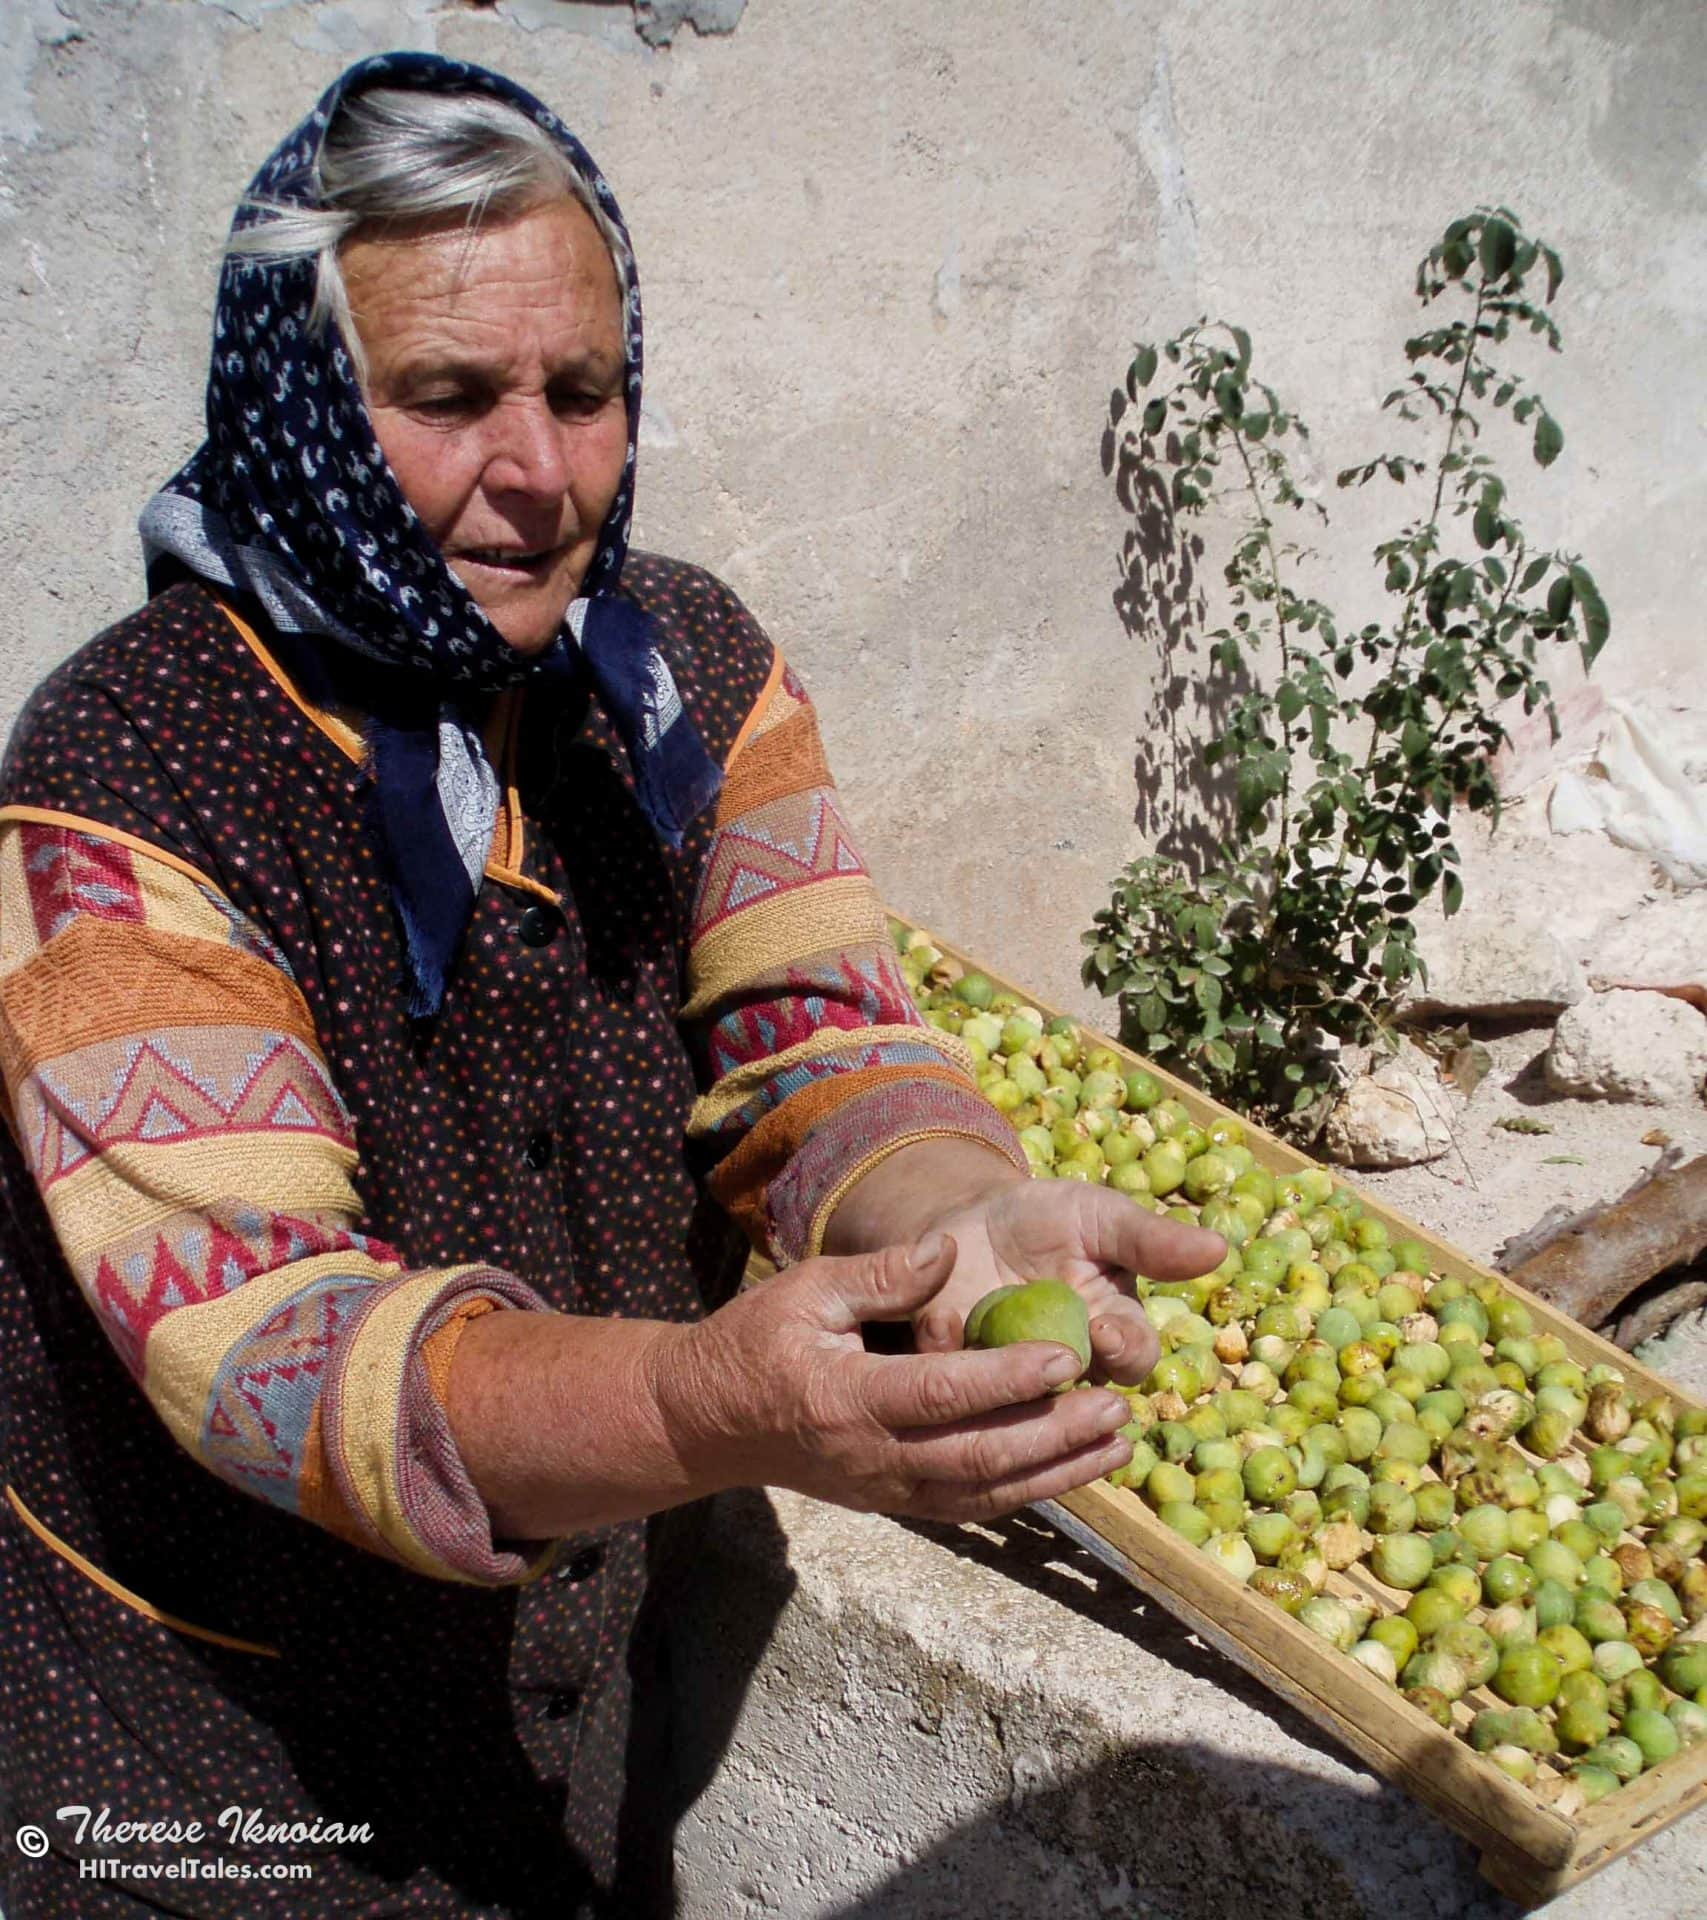 A Croatian lady and her figs caught our photographer's eye.